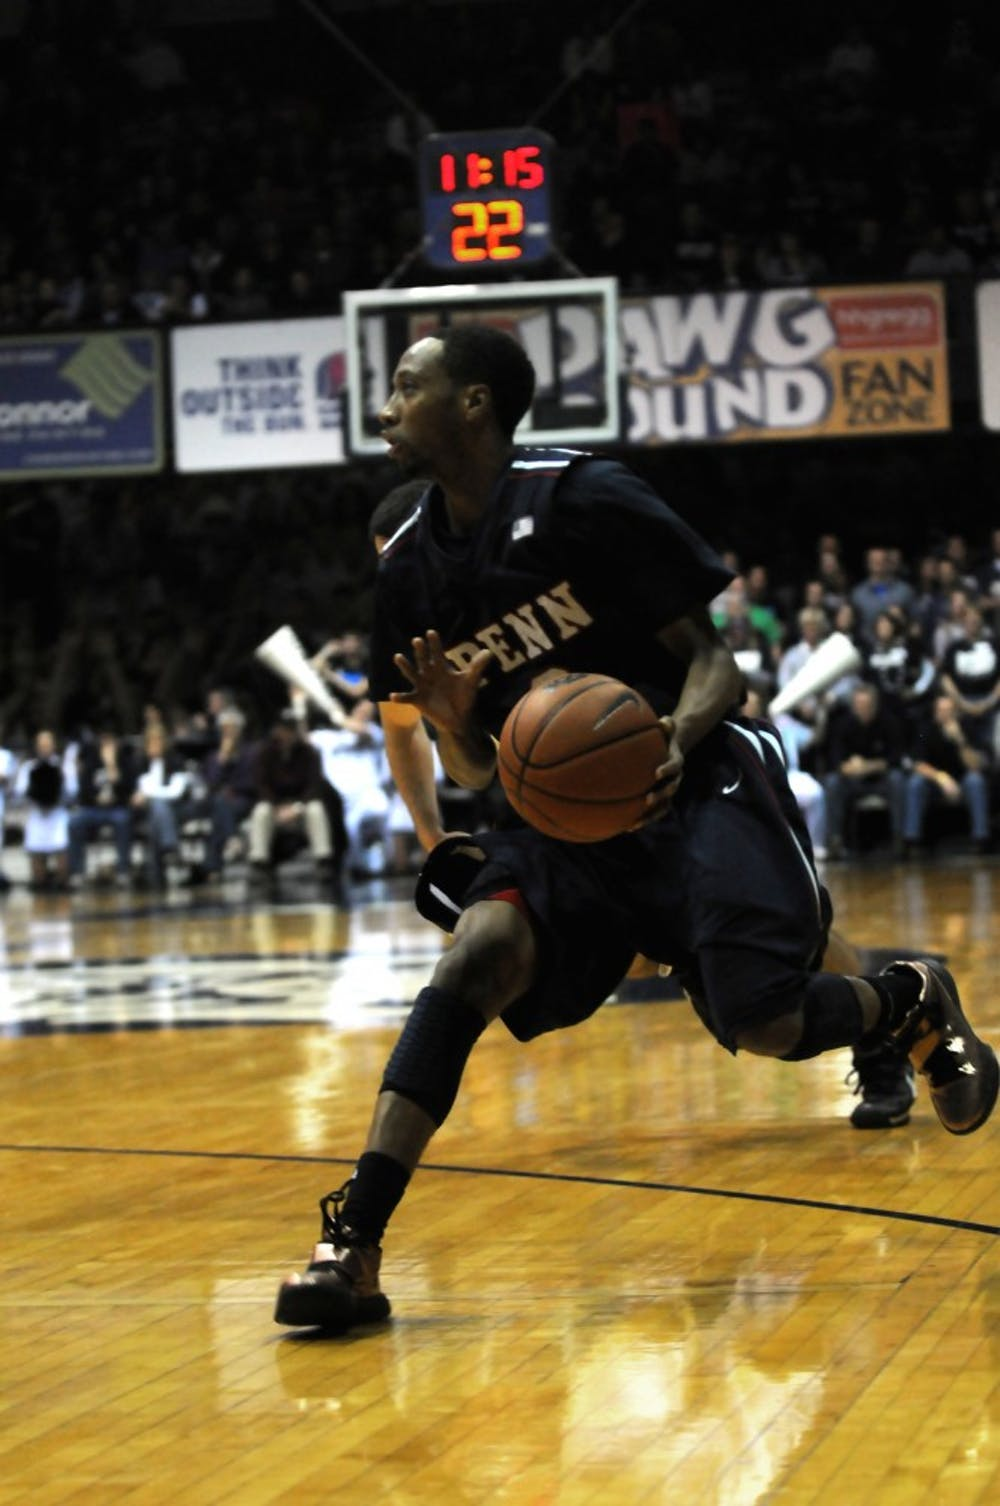 Penn fell to No. 17 Butler, 70-57, at the Hinkle Fieldhouse in Indianapolis.